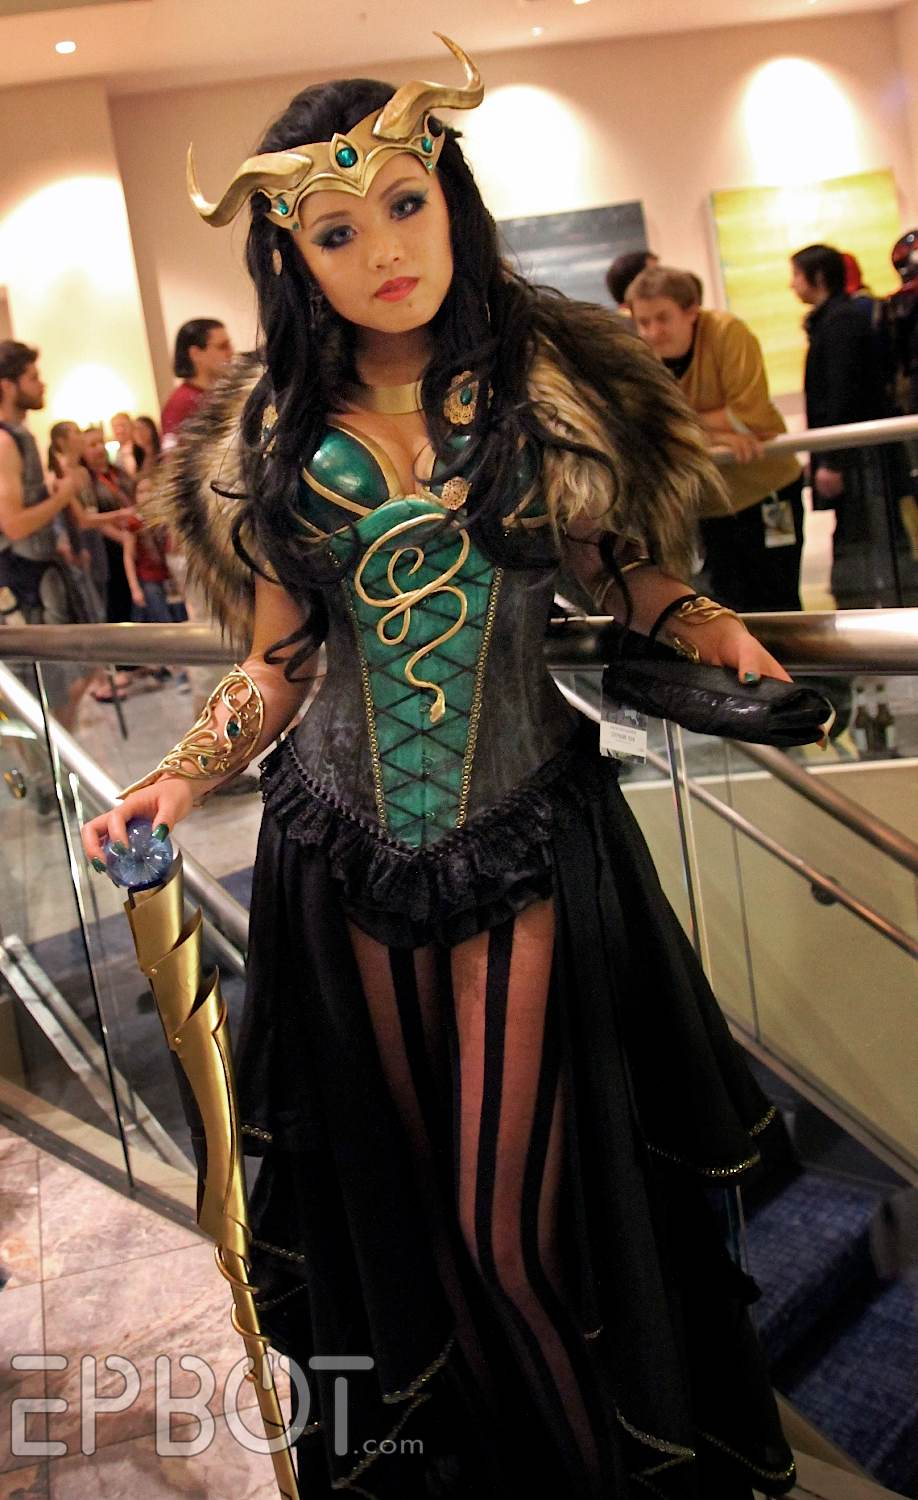 Epbot the best cosplay of dragon con 2014 pt 3 the best cosplay of dragon con 2014 pt 3 solutioingenieria Gallery